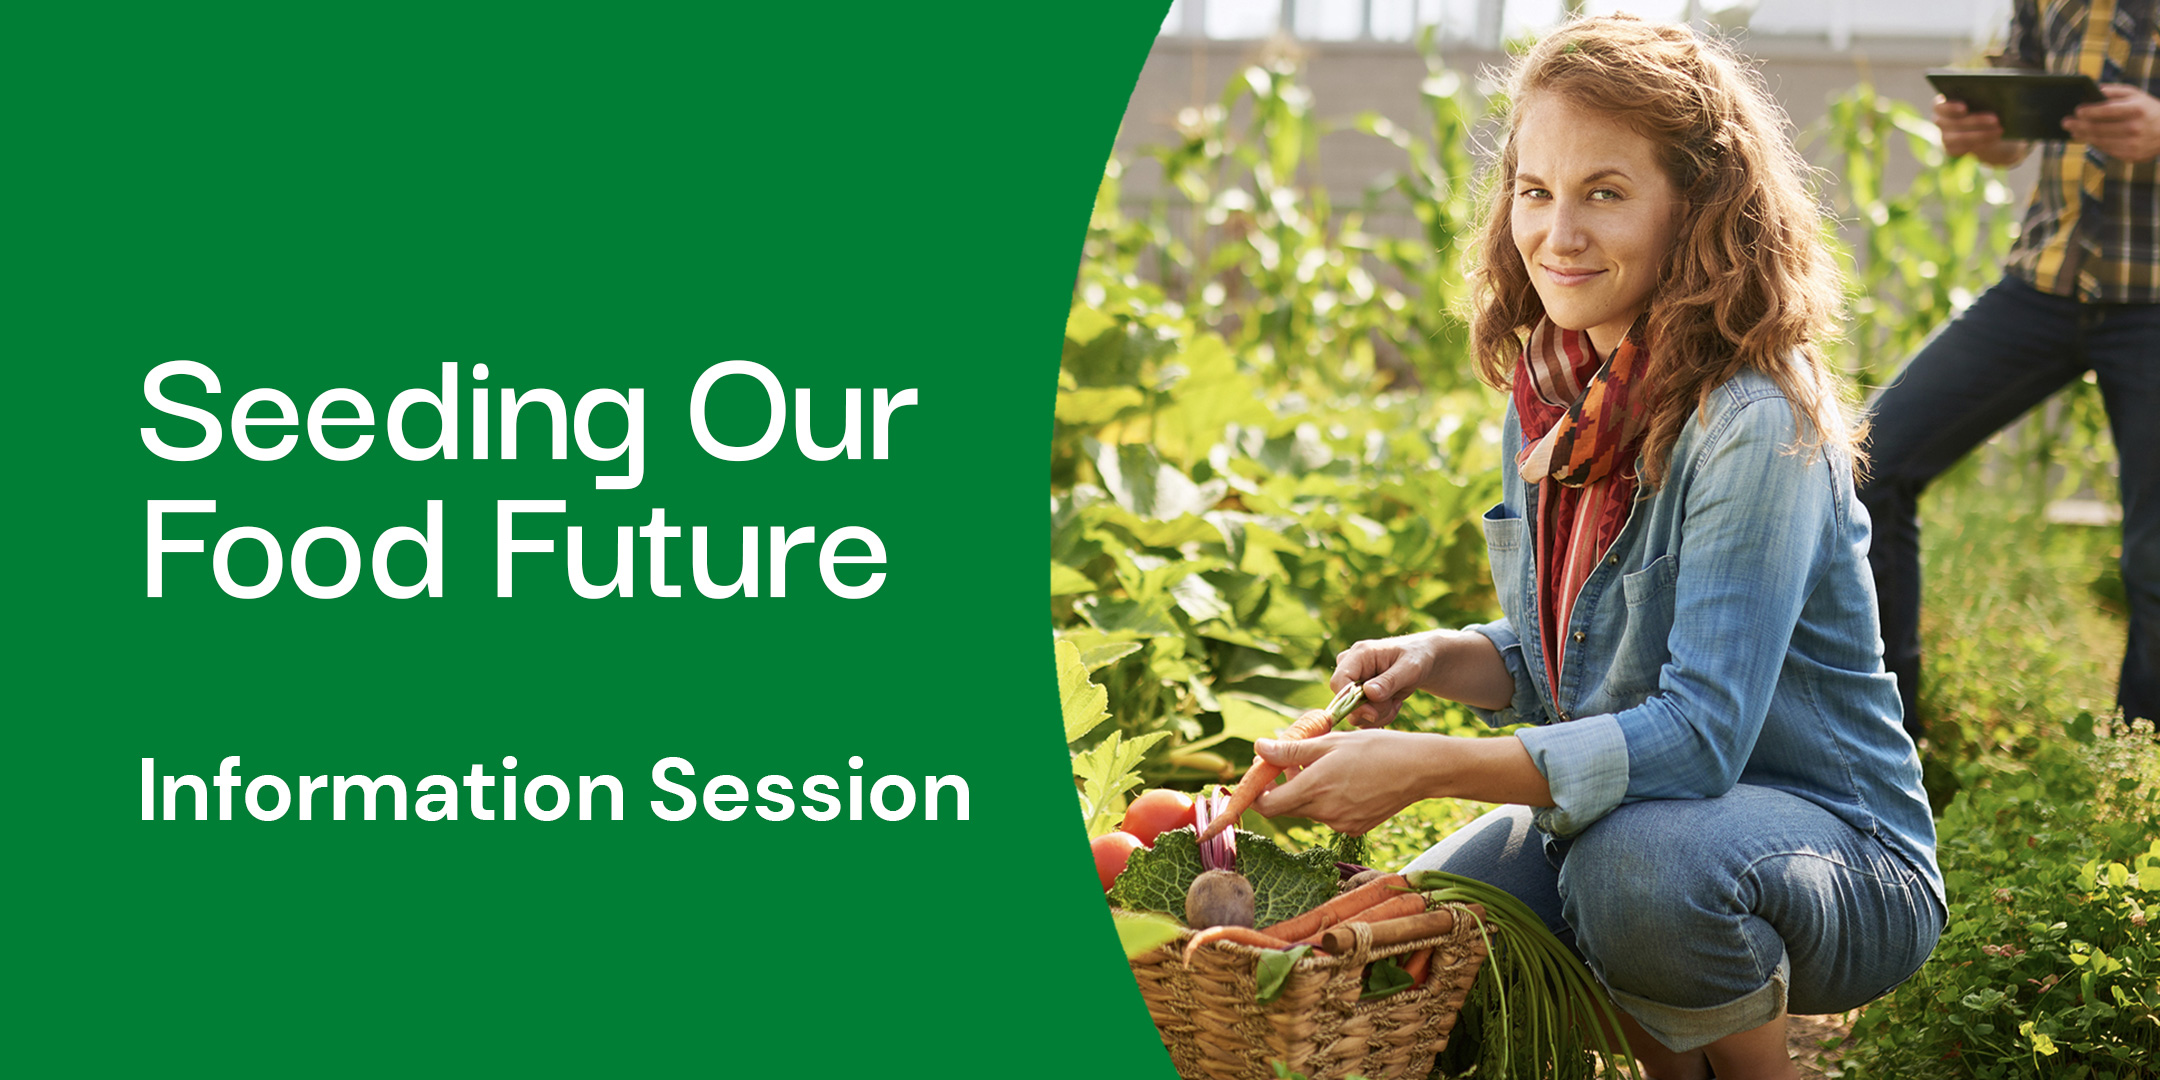 Seeding our Food Future Grant Program Information Sessions